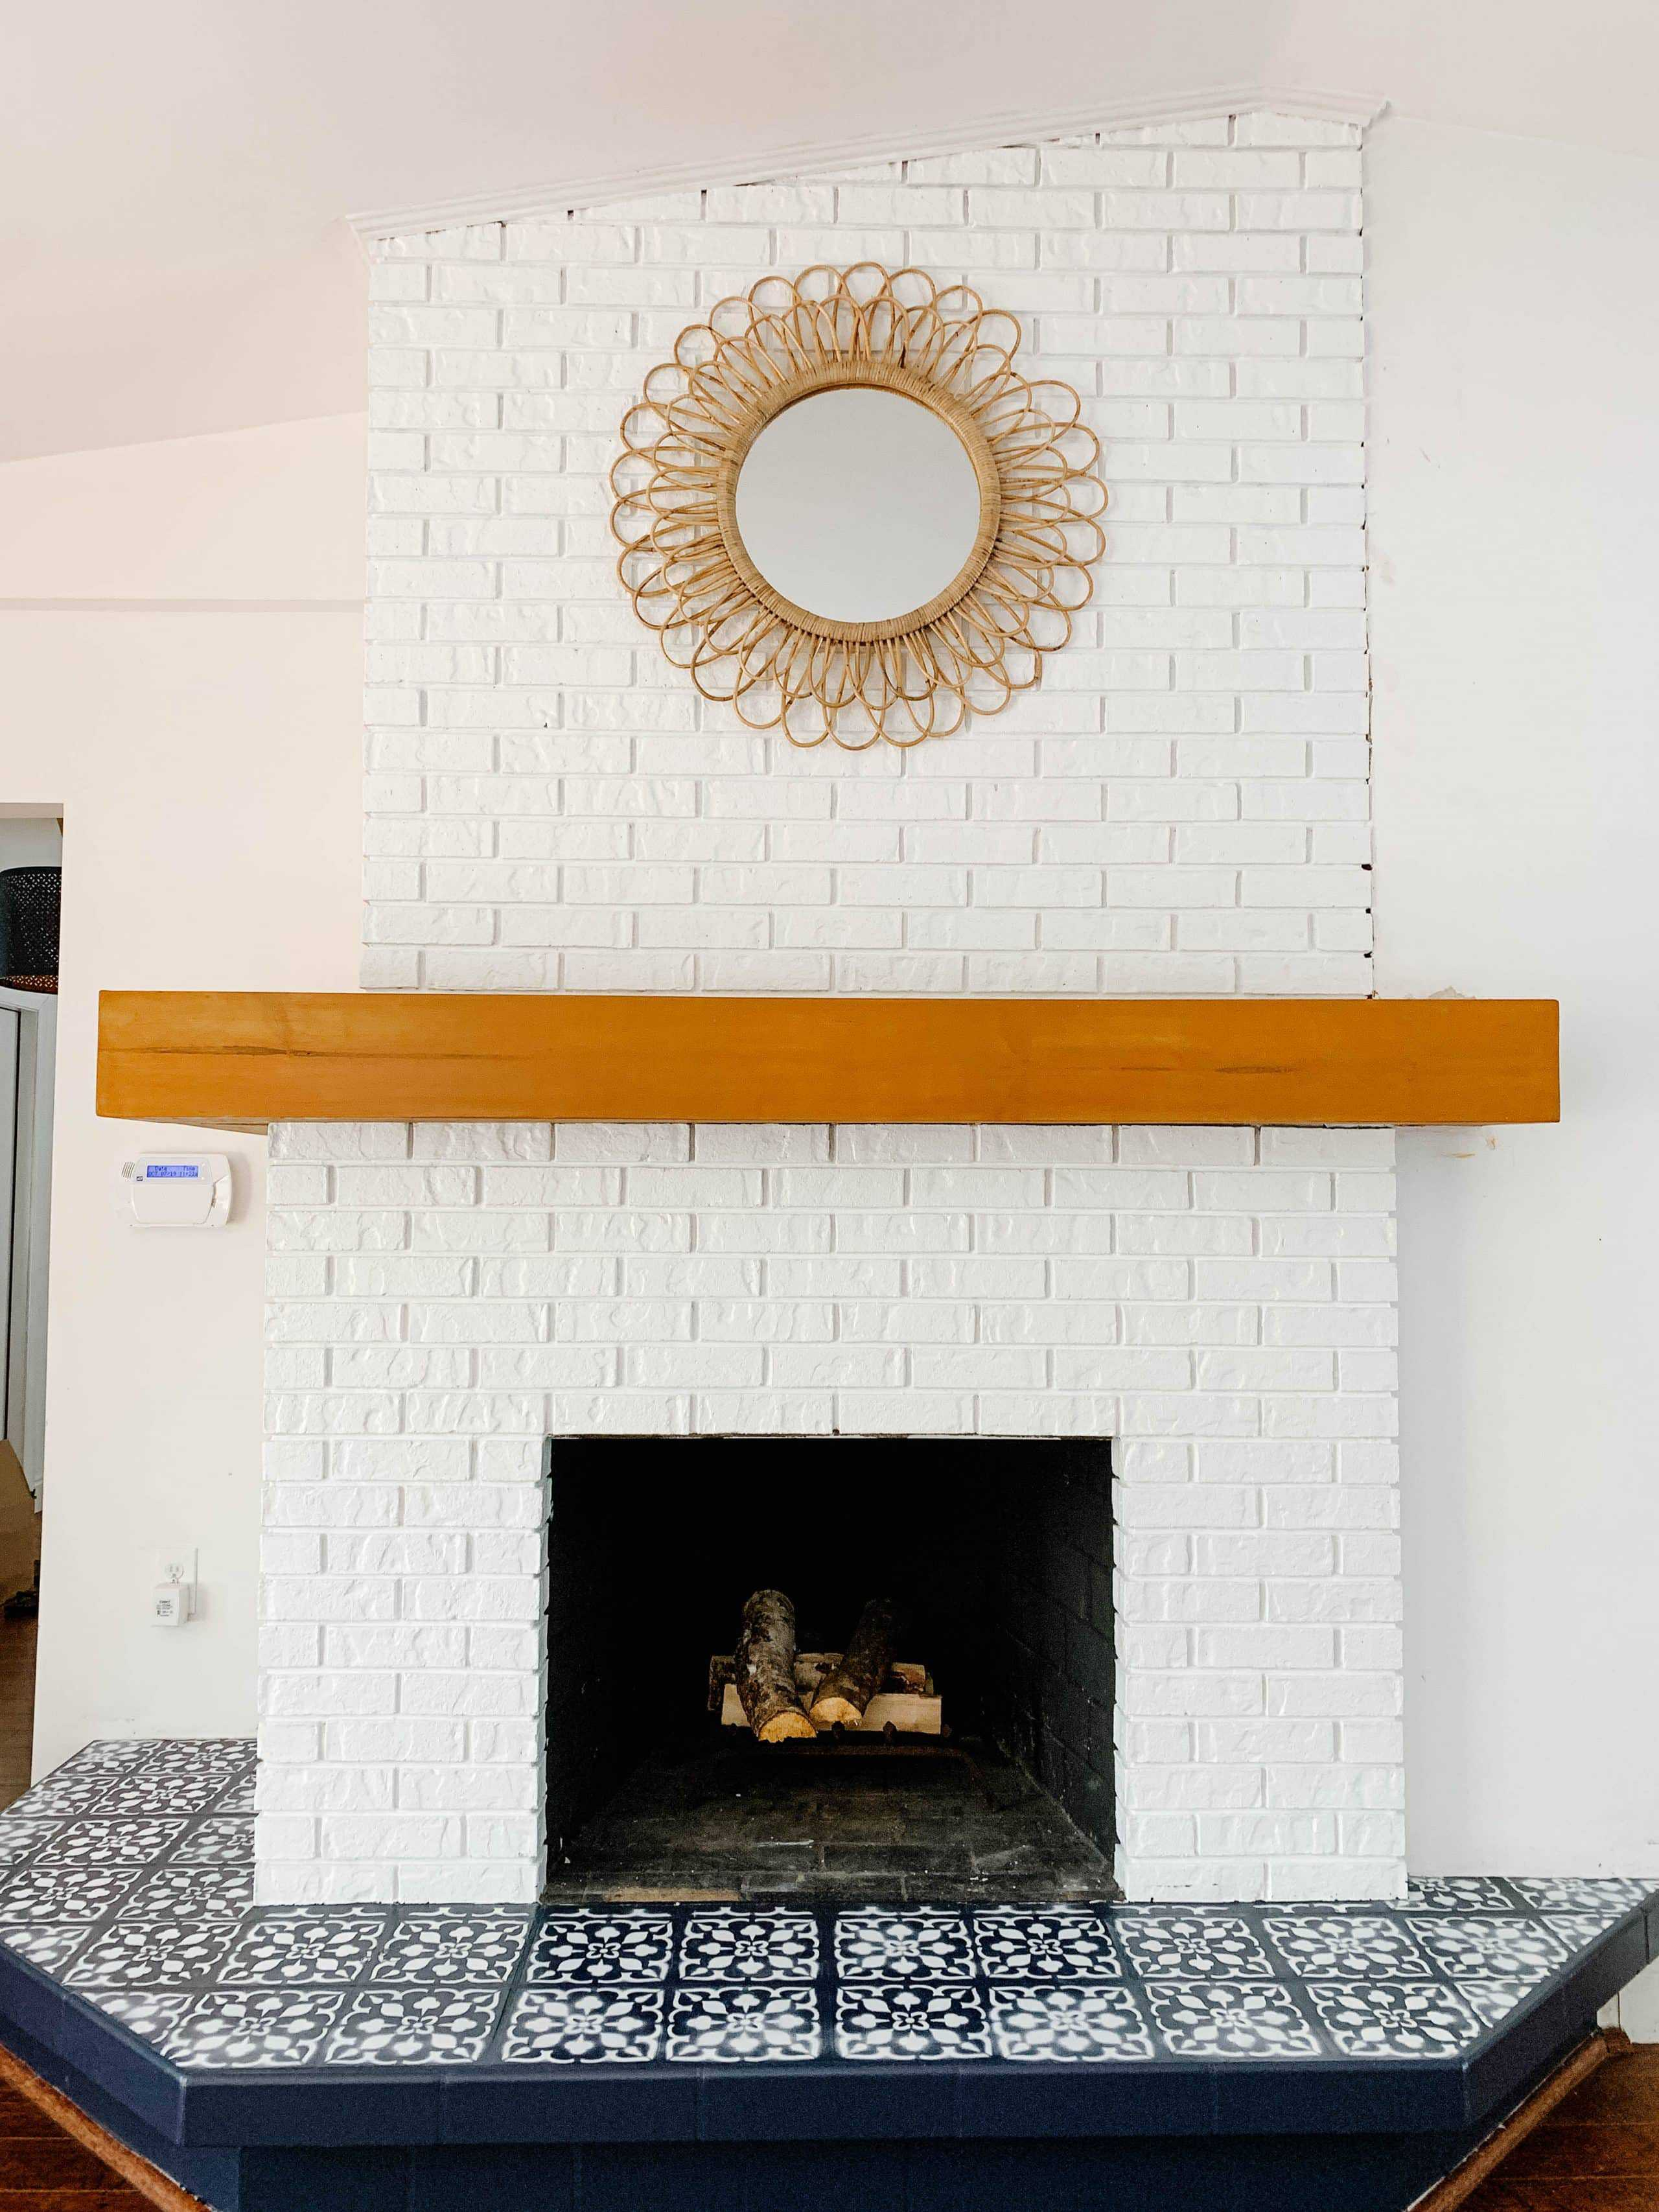 DIY Fireplace Makeover: How To Strip & Stain Fireplace Mantel Before & After, fireplace mantel makeover, diy fireplace mantel over brick, retaining fireplace mantel, stripping wood mistakes, fireplace mantle ideas, retain wood mantle, how to strip wood stain, #fireplacemakeover, #fireplacebeforeafter, #fireplaceremodel, #honeymantel, #woodmantel, #mantelideas, #mantelideas, mantel ideas